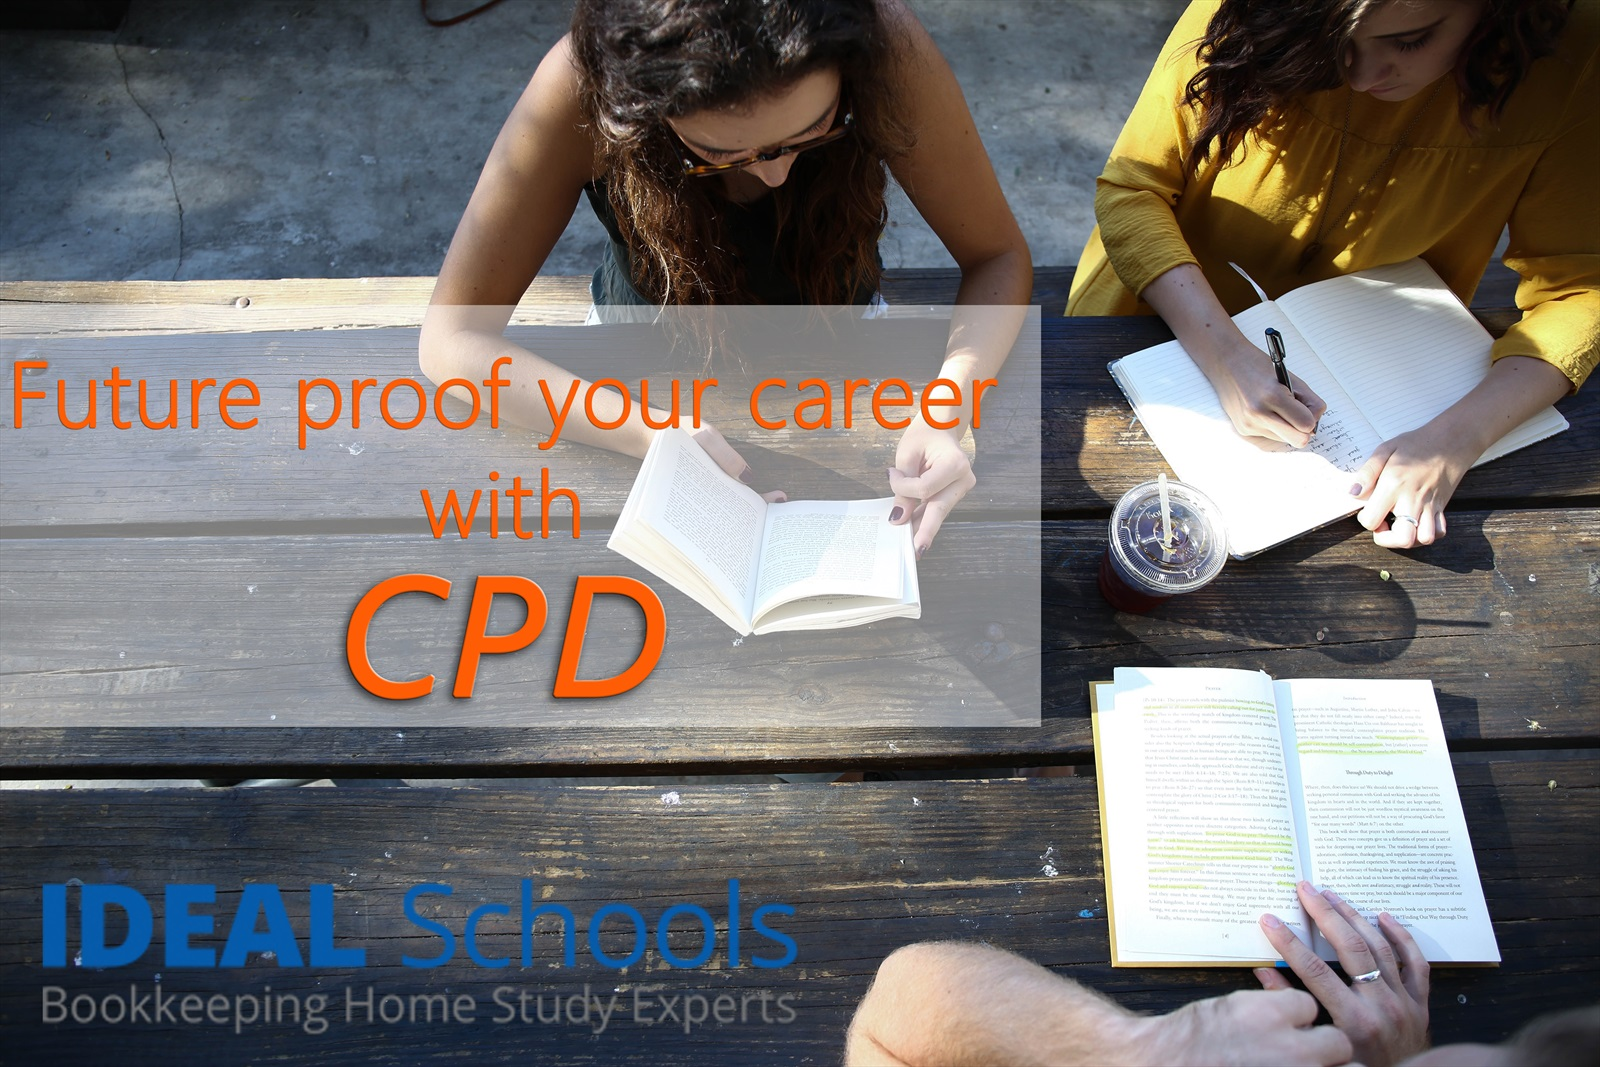 The importance of continued professional development (CPD)